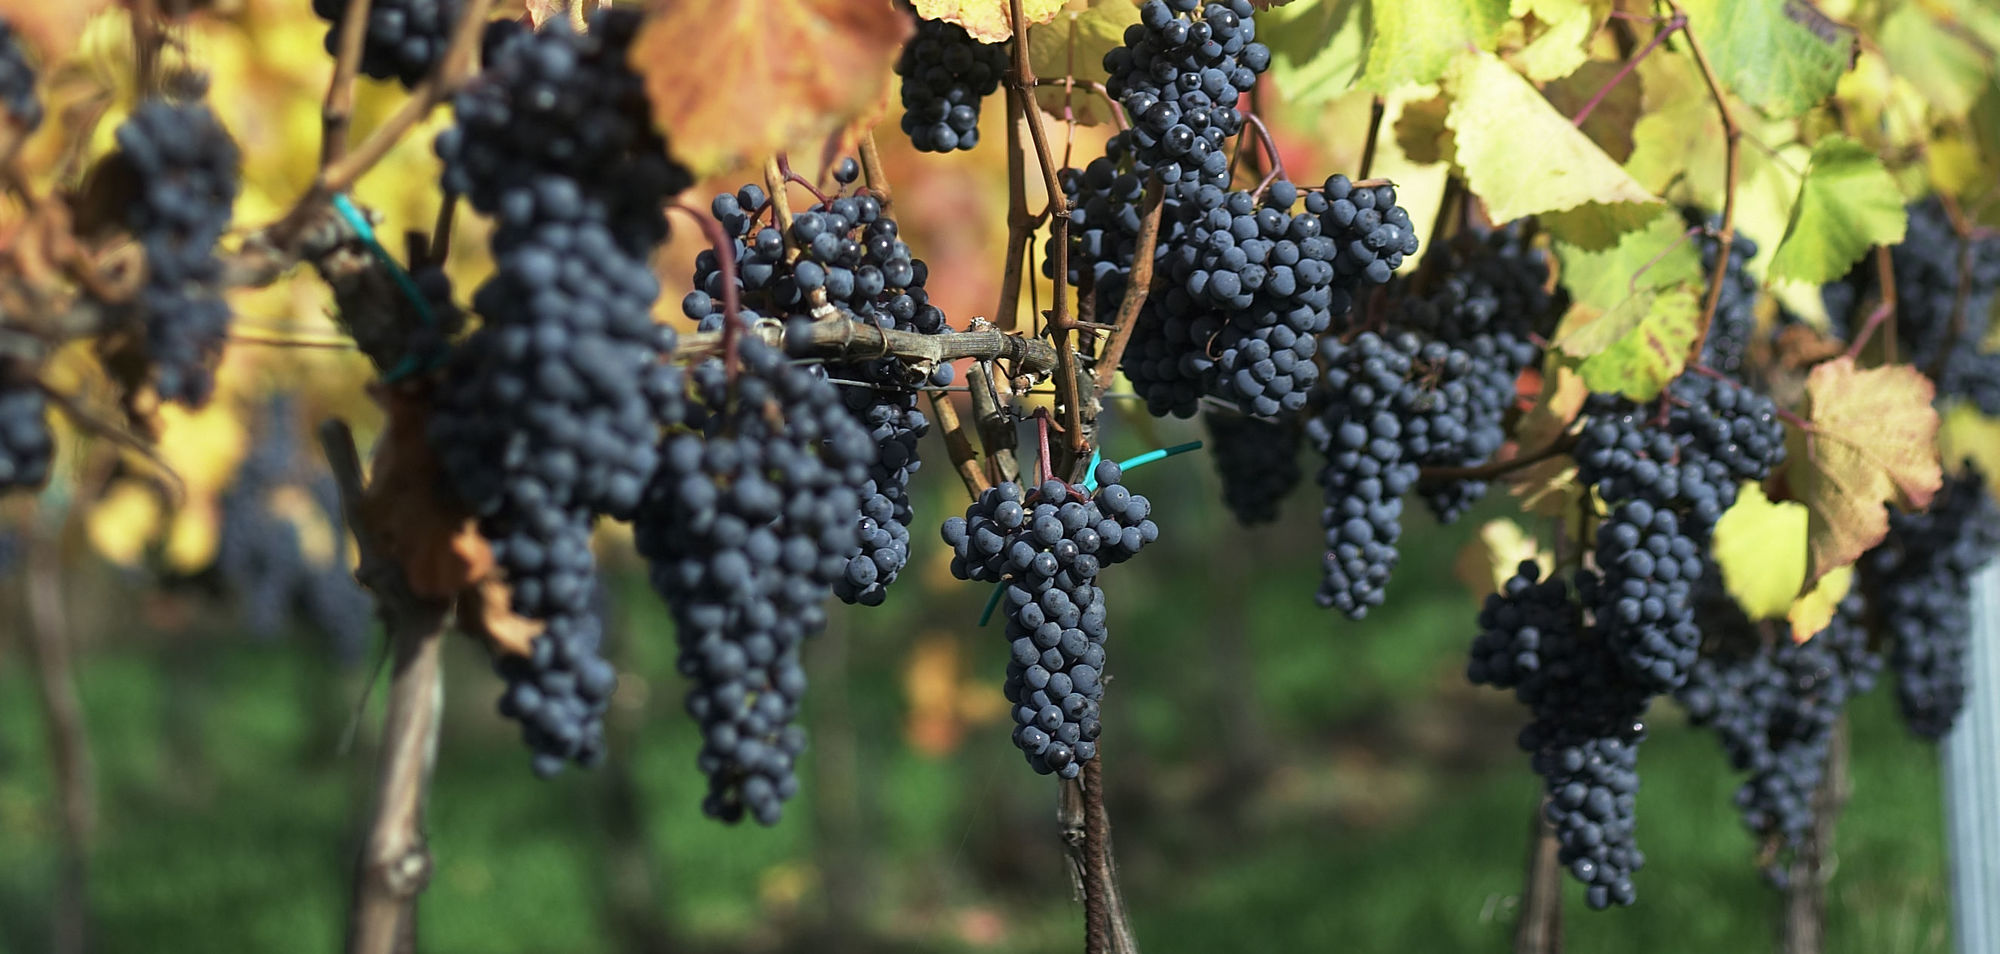 Some of the most exciting wines at the moment are made with Blaufränkisch, known as Kékfrankos in Hungary